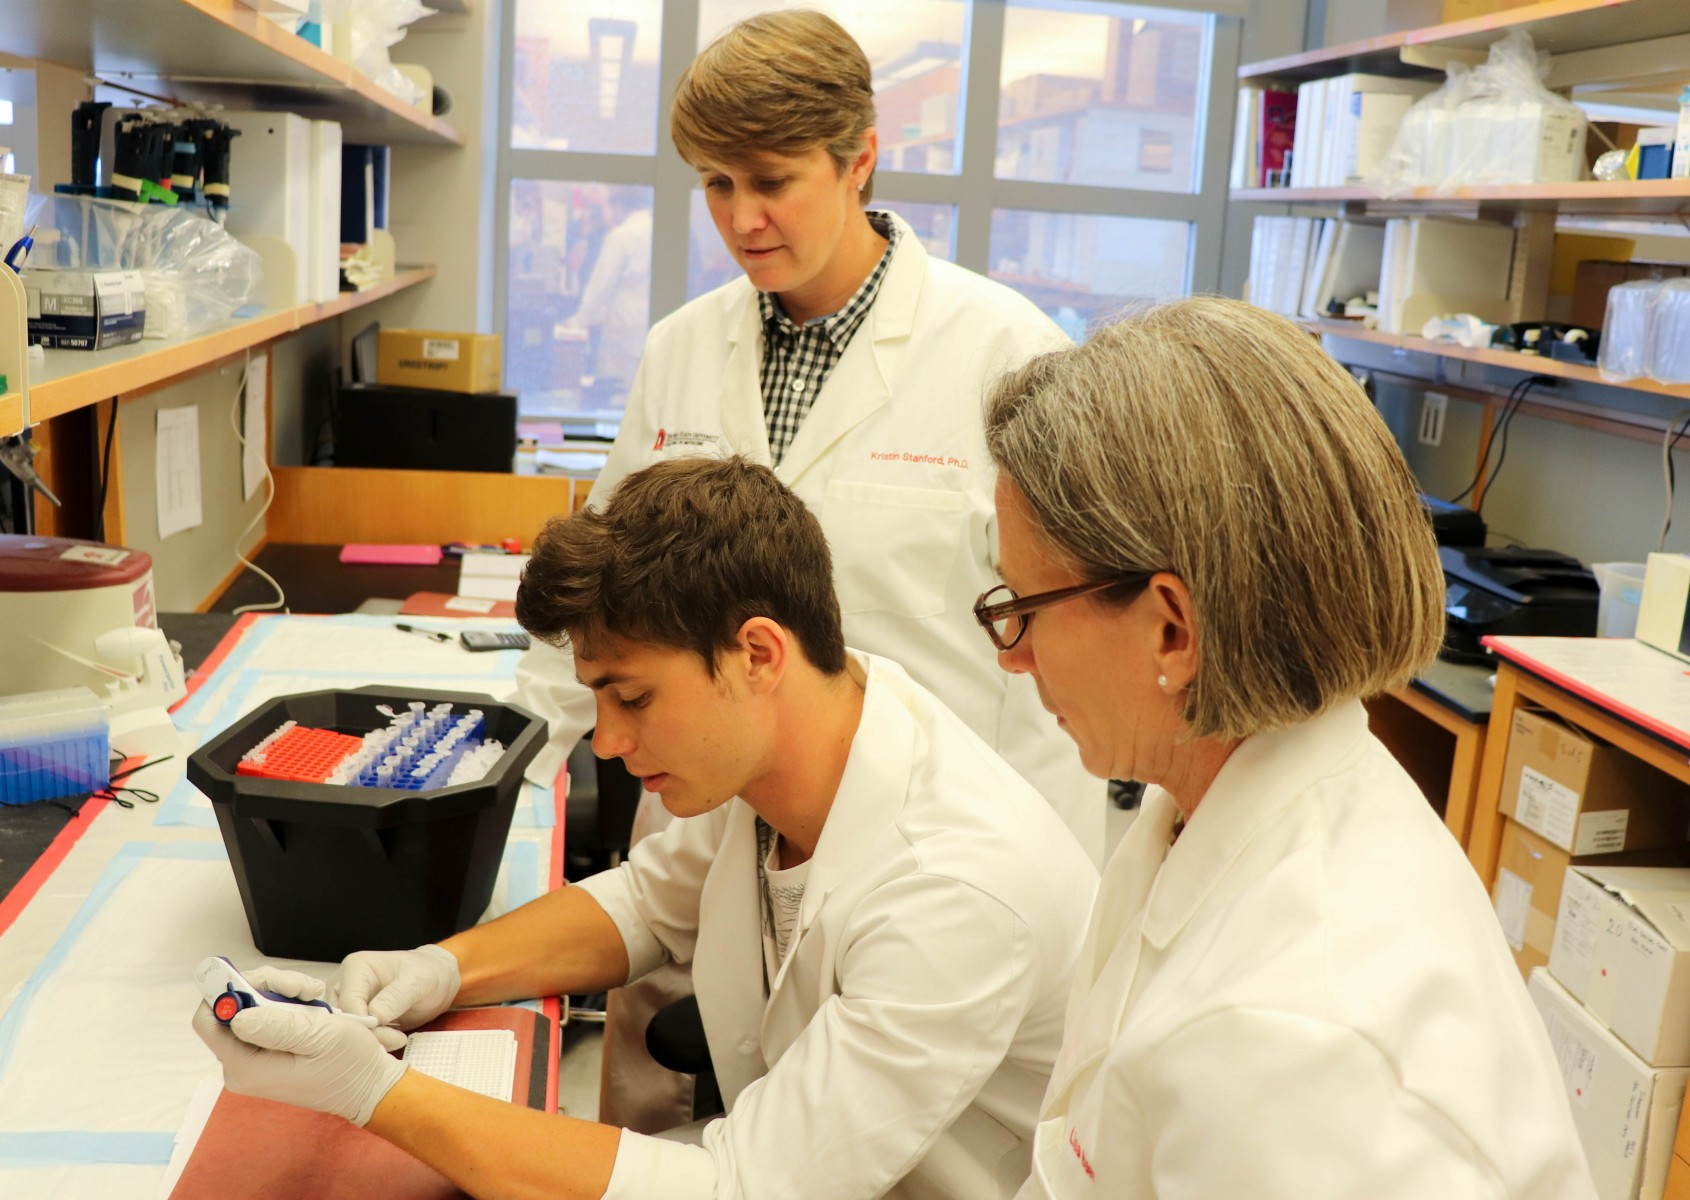 Researchers examine the small-RNA of mice in a lab at The Ohio State University Wexner Medical Center.